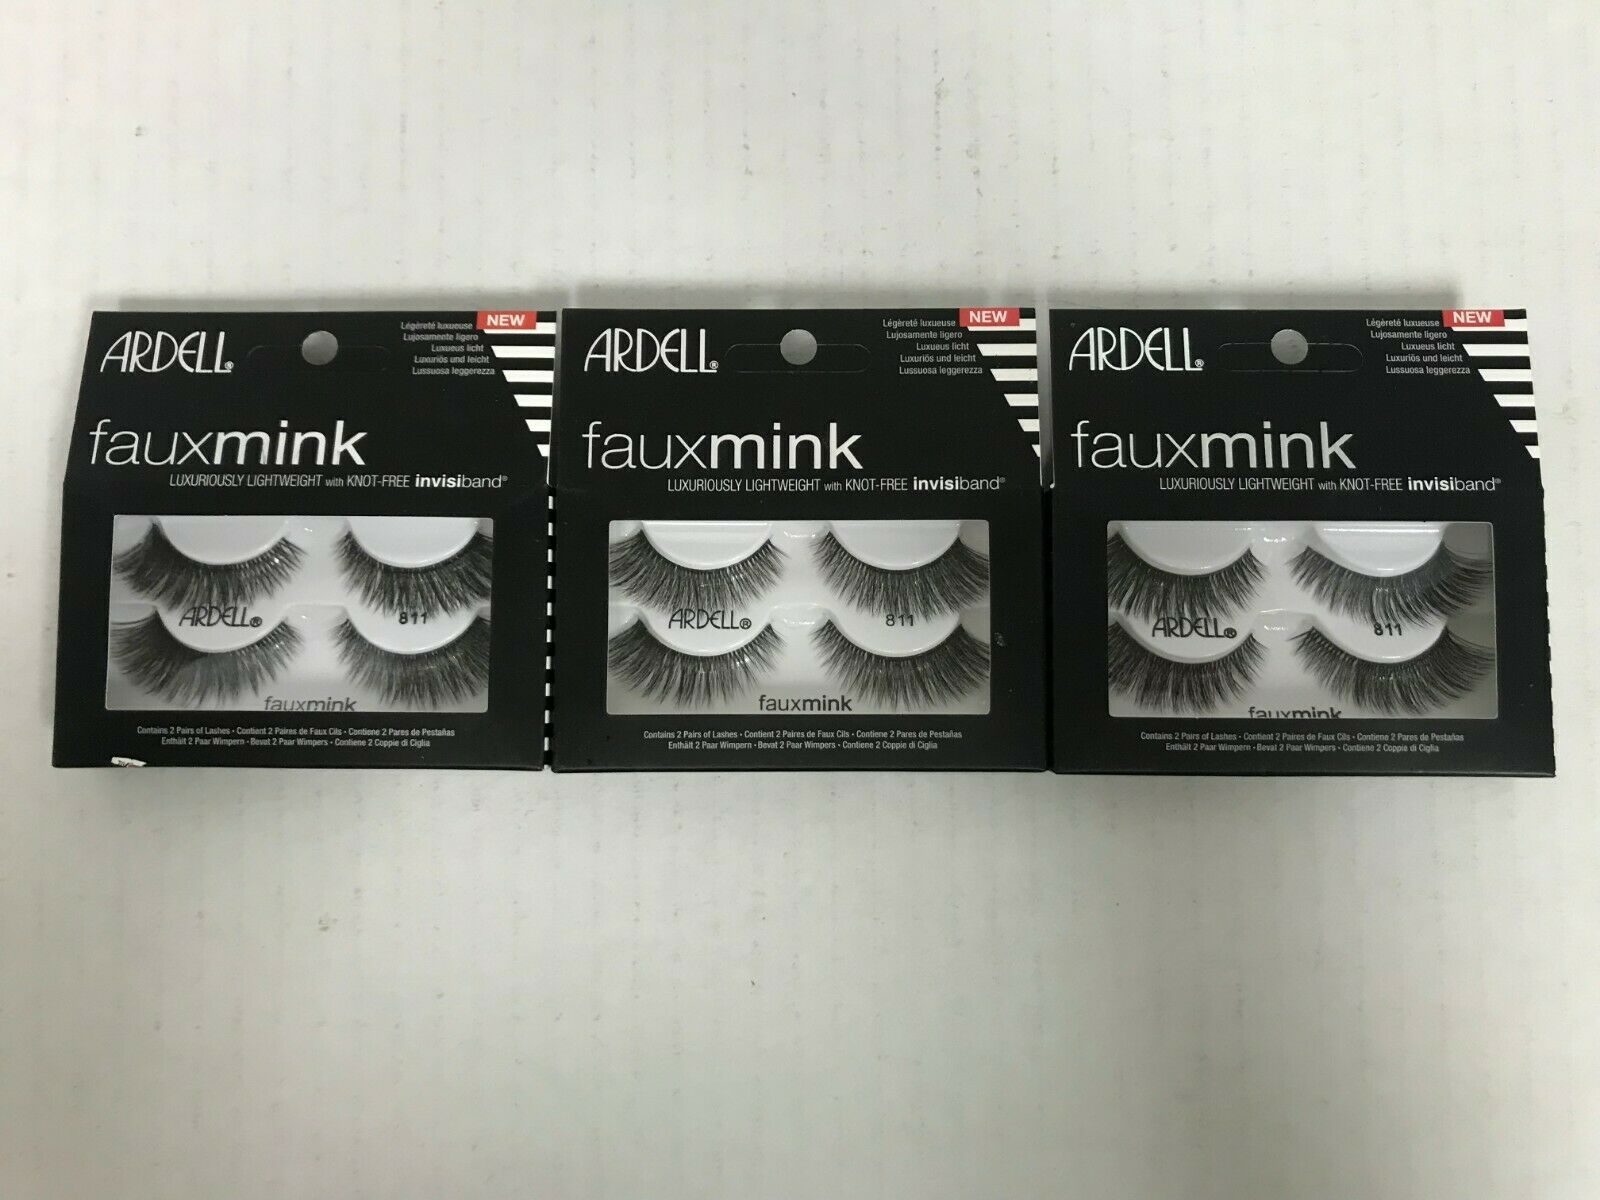 6 PAIRS ARDELL FAUX MINK EYELASHES - STYLE 811 BLACK STRIP L